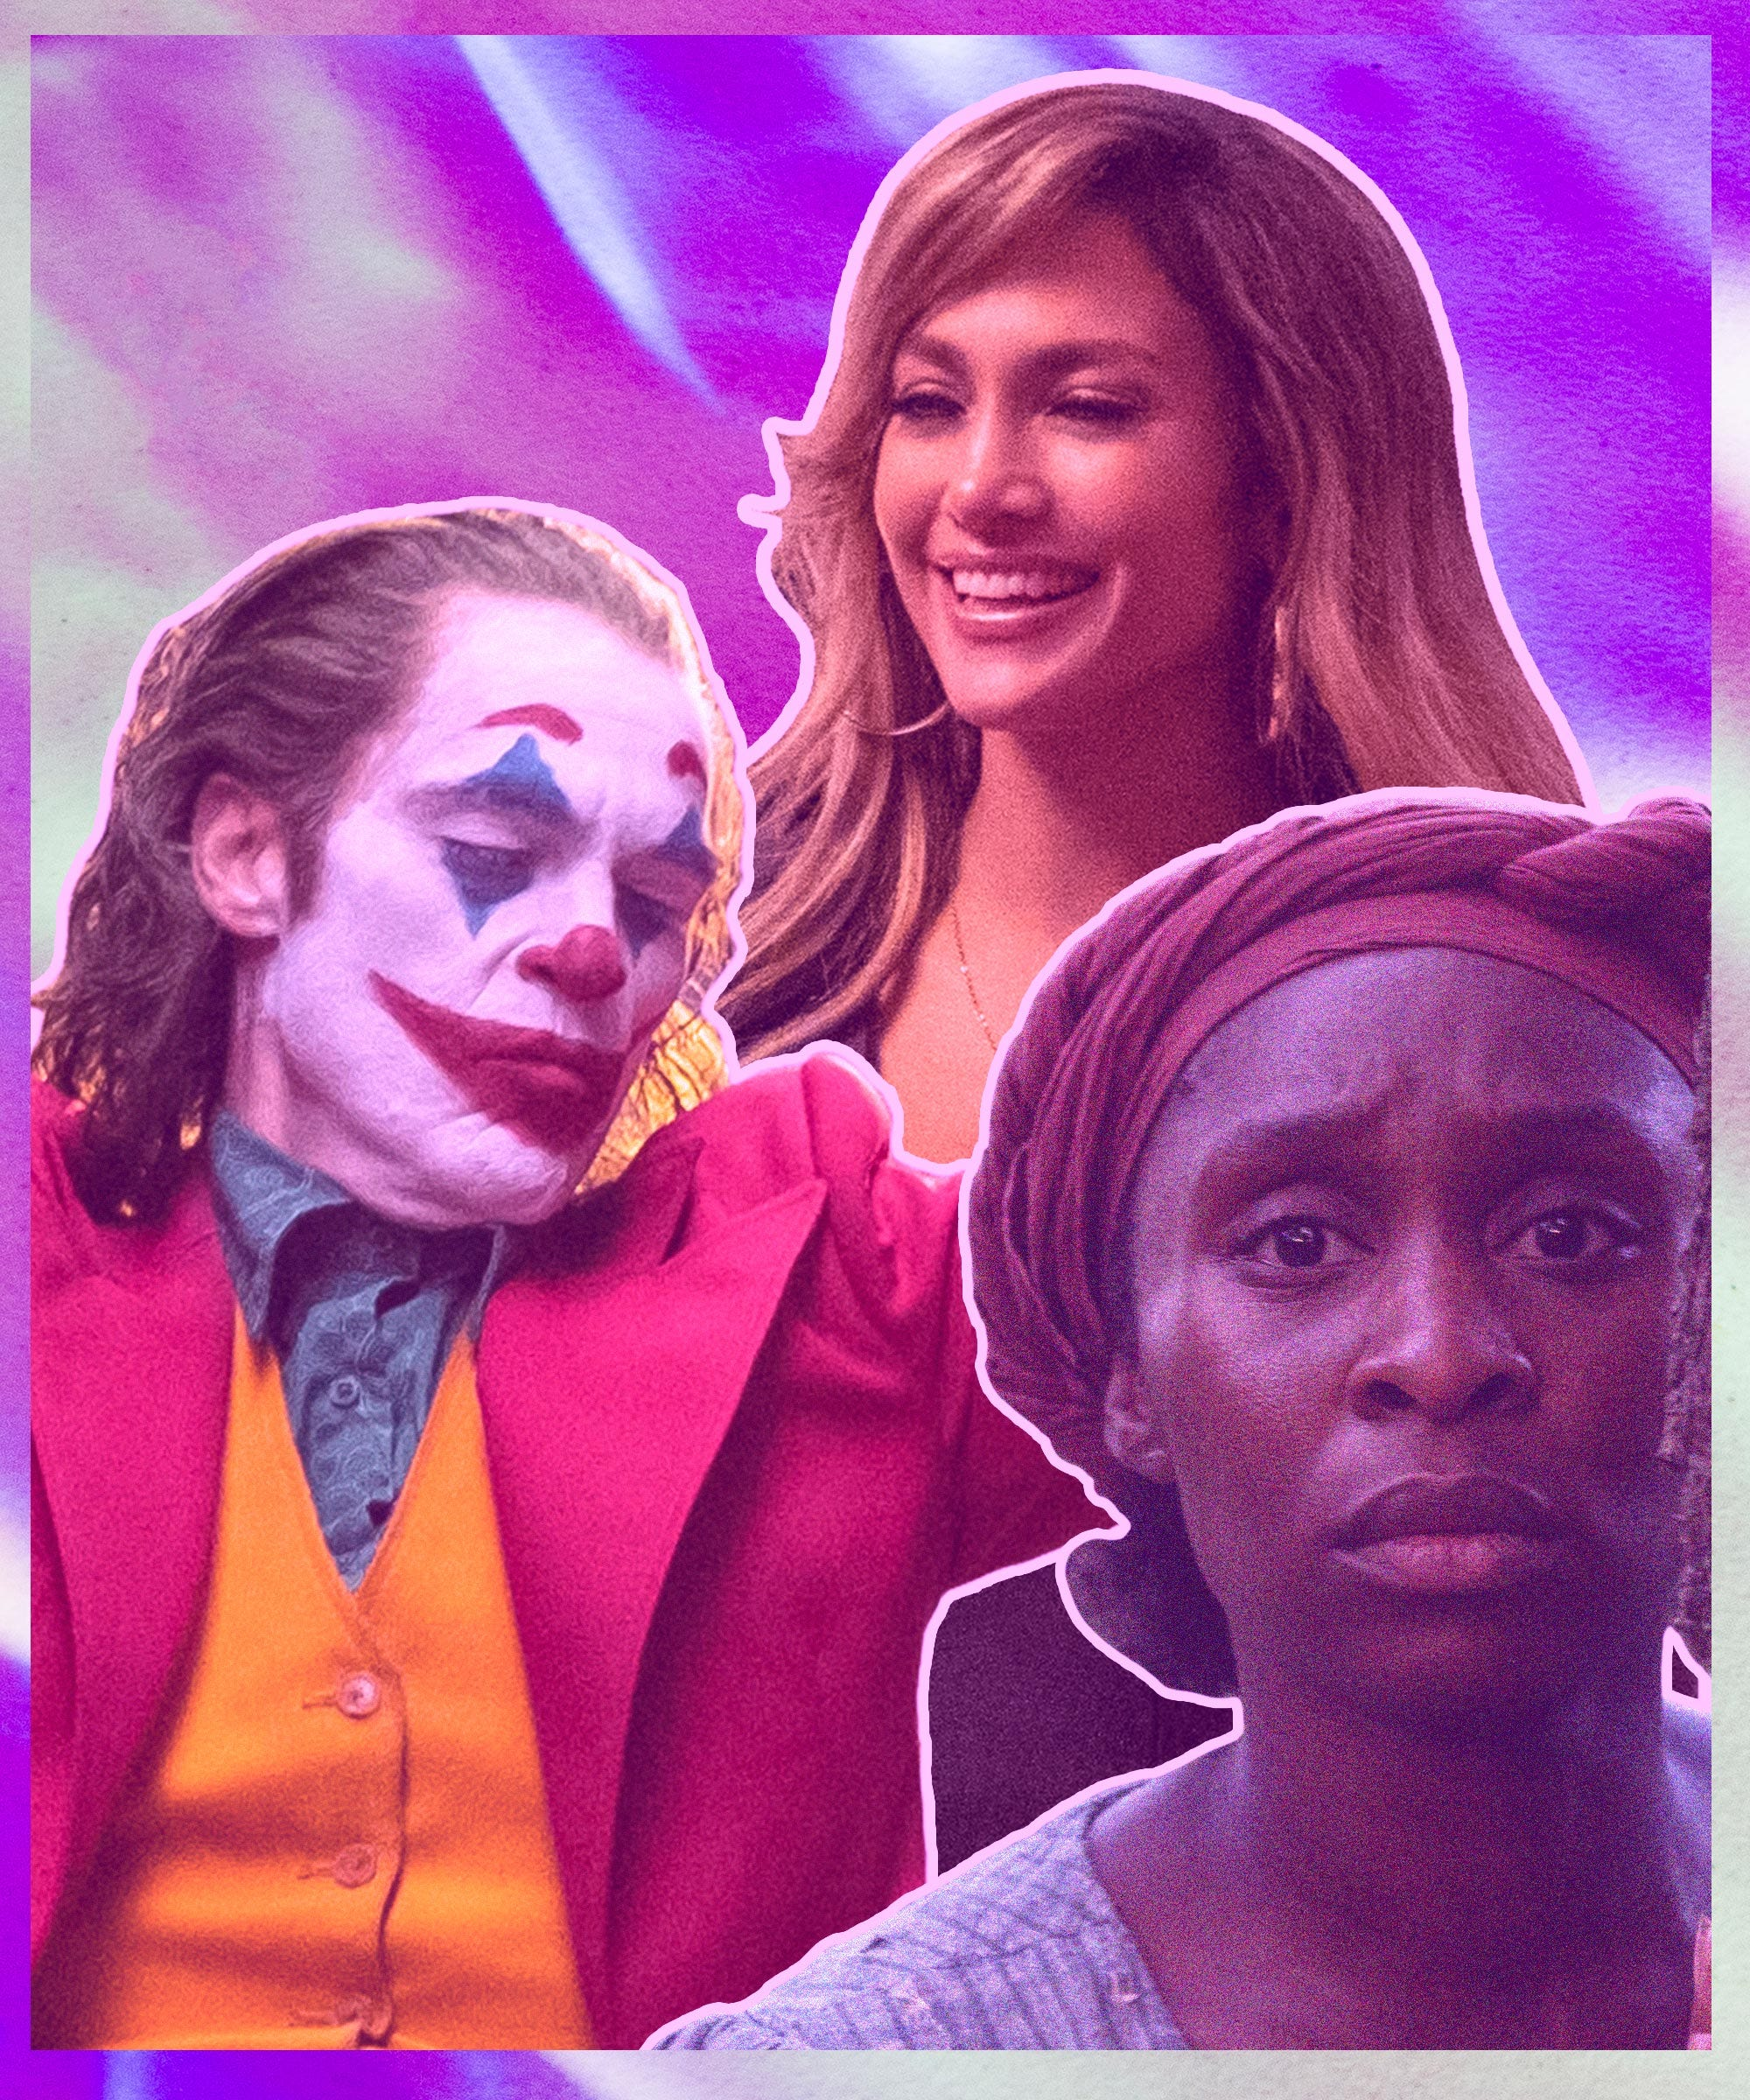 From Hustlers To Harriet, Here Are The Movies To Look Out For In Autumn 2019